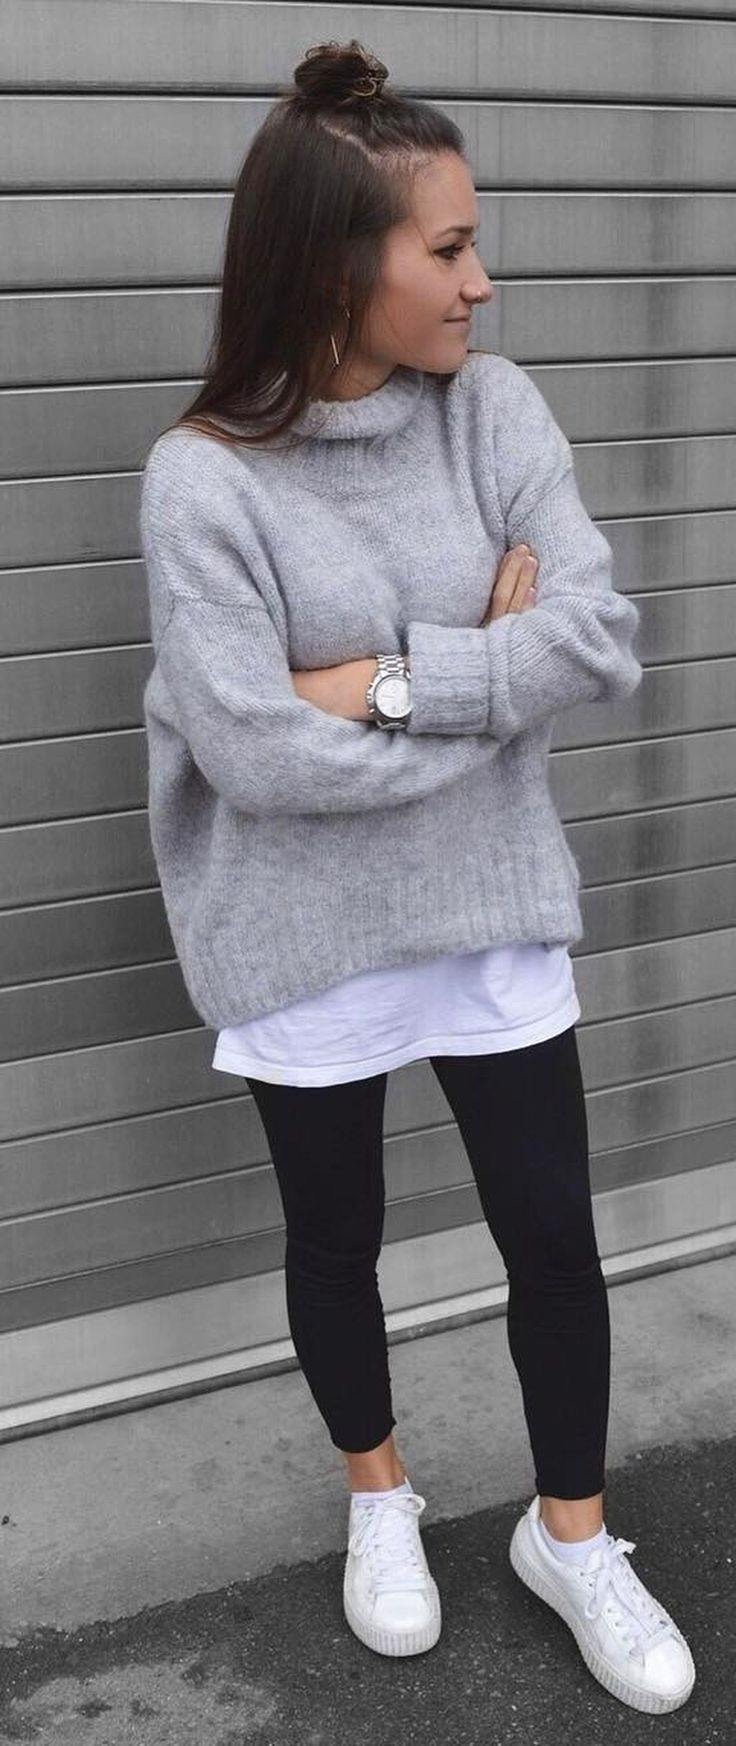 Cool 37 Stylish Sneakers Outfits Ideas for This Winter. More at http://aksahinjewelry.com/2017/11/26/37-stylish-sneakers-outfits-ideas-winter/